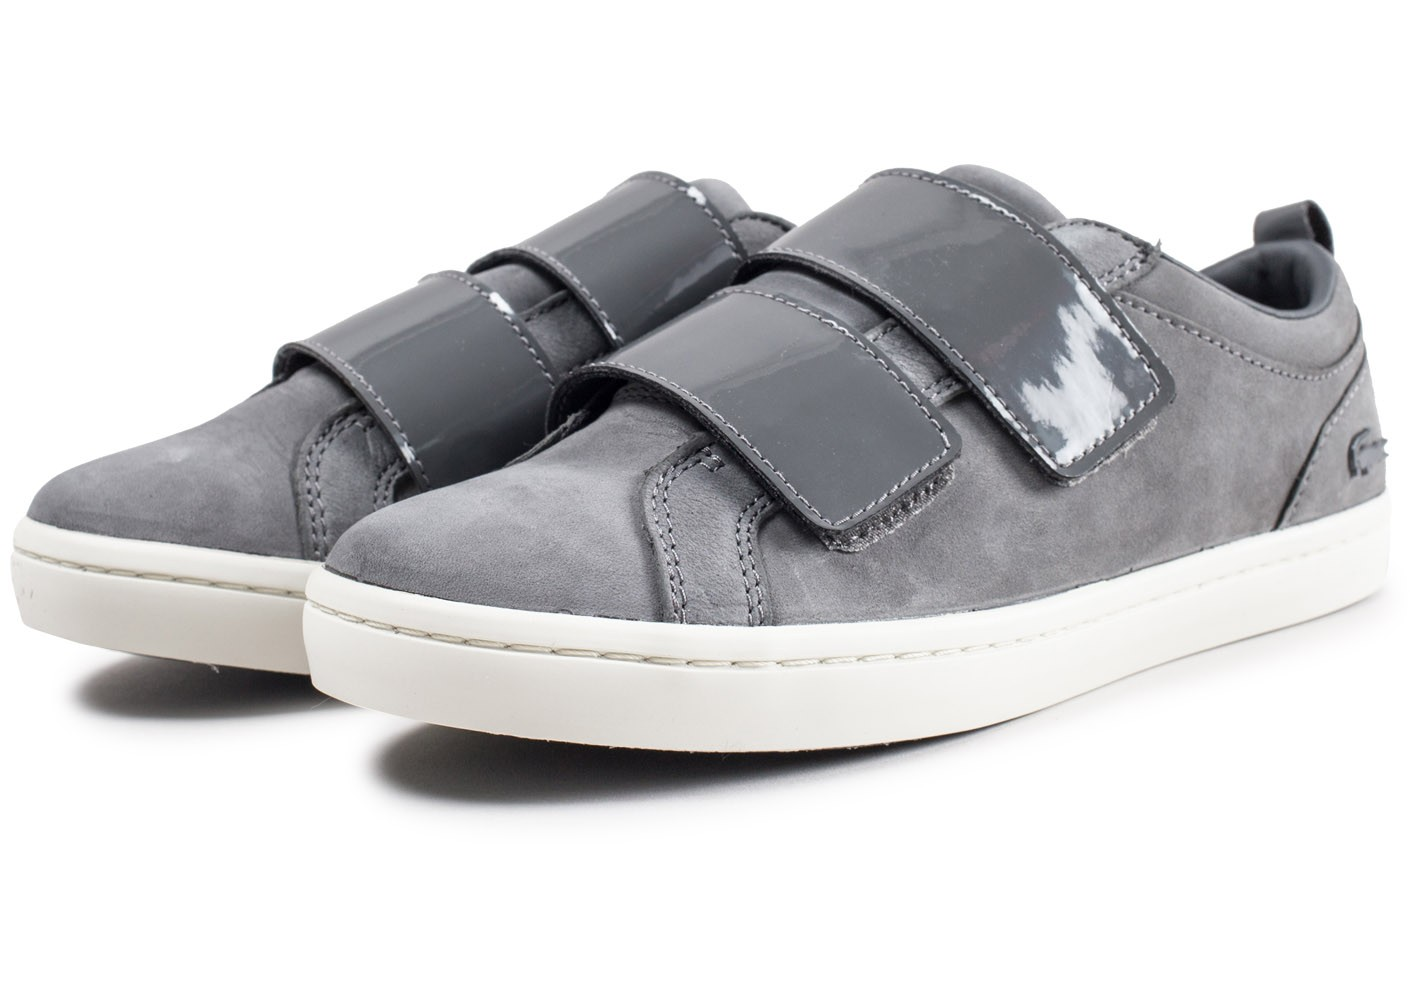 66bf1727aada ... Chaussures Lacoste Straightset Strap grise femme vue intérieure ...